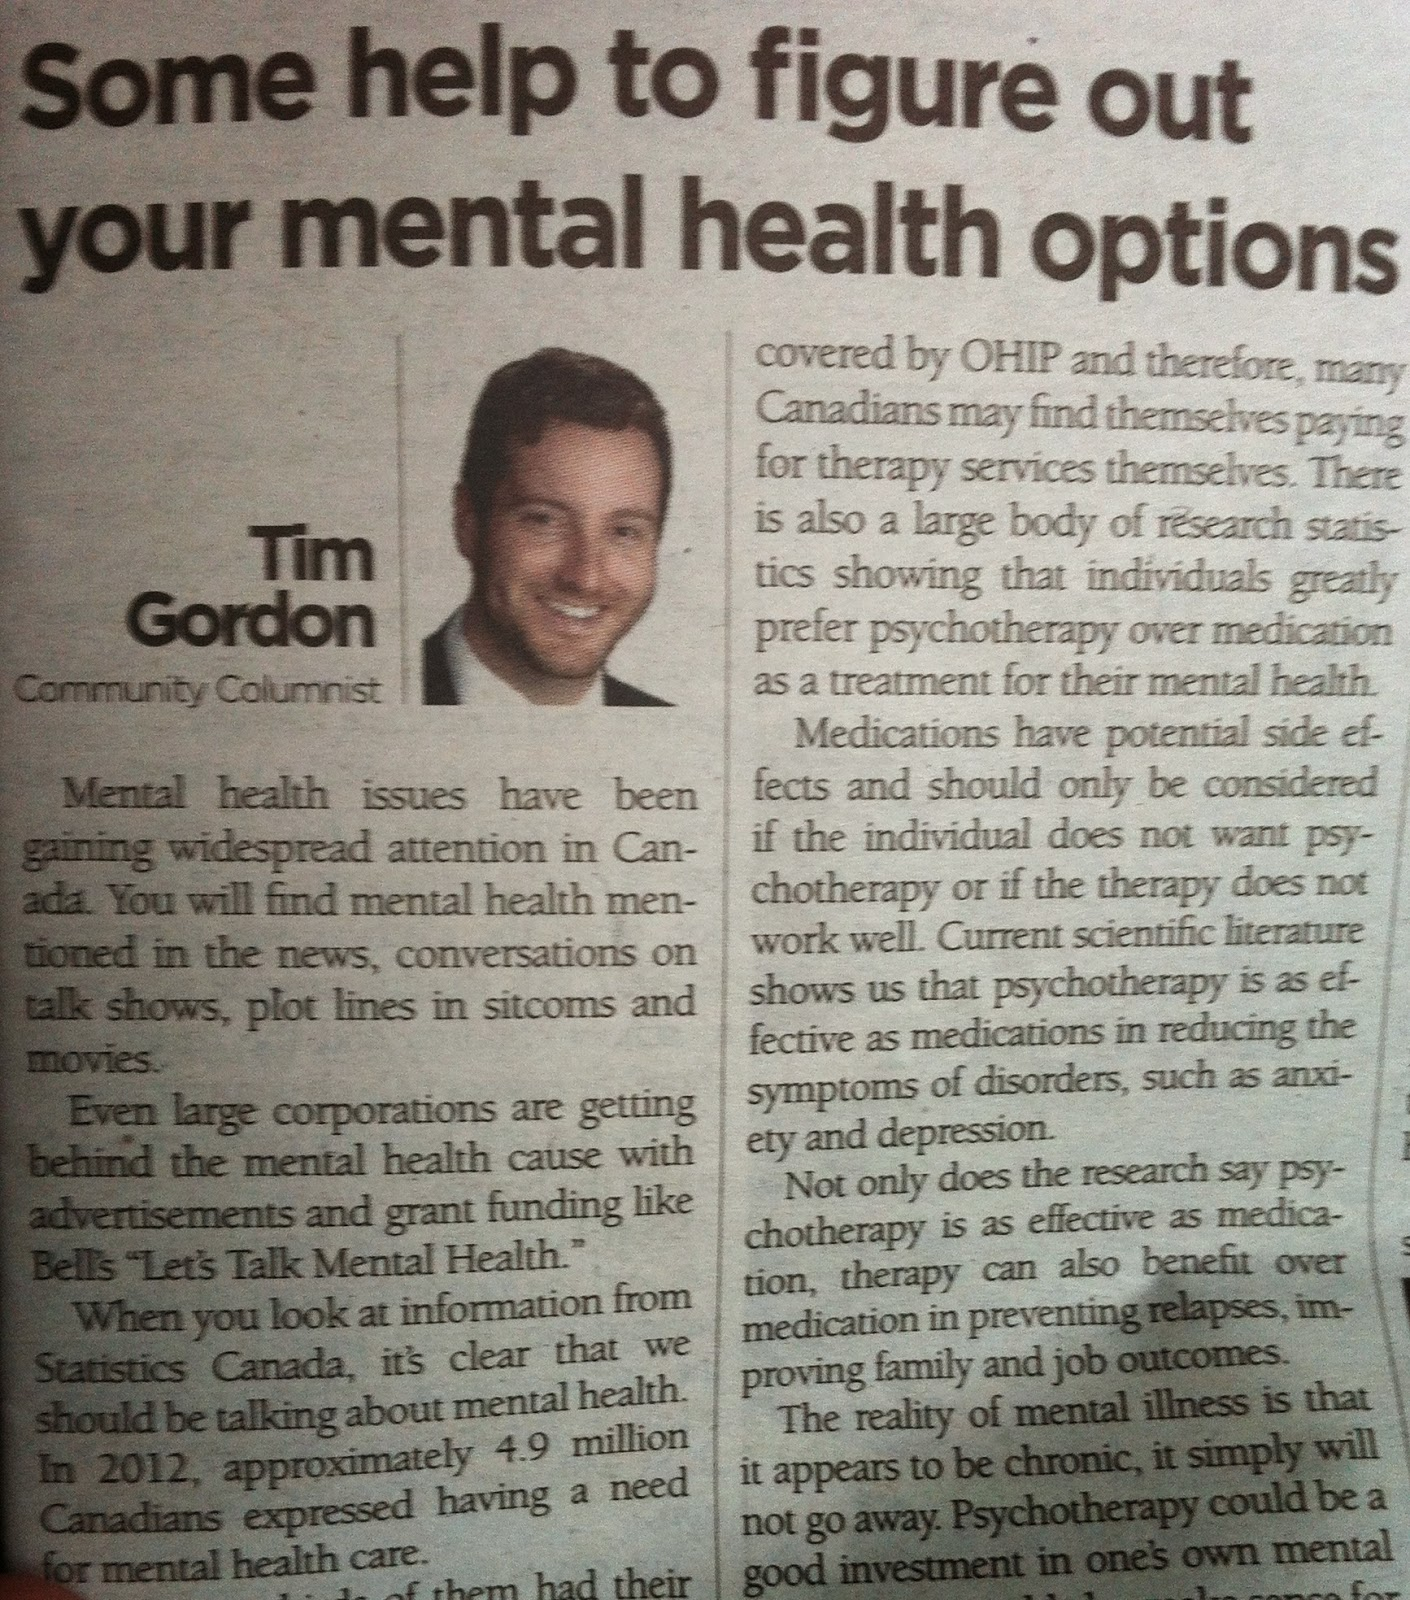 newspaper report related to psychological and mental health